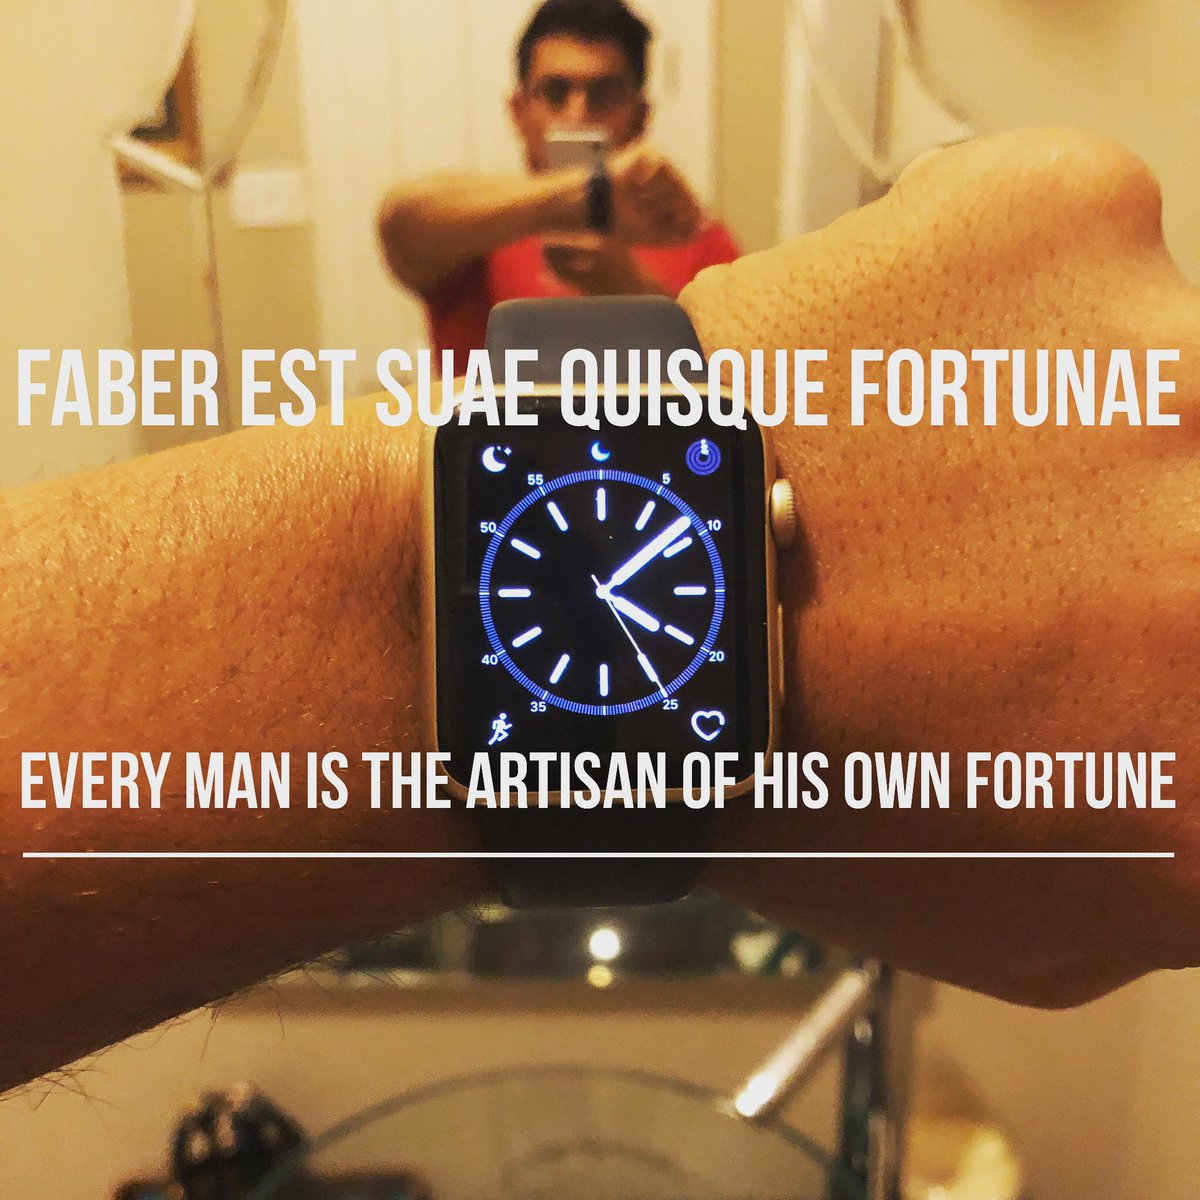 Neel S Sus On Twitter Every Man Is The Artisan Of His Own Fortune